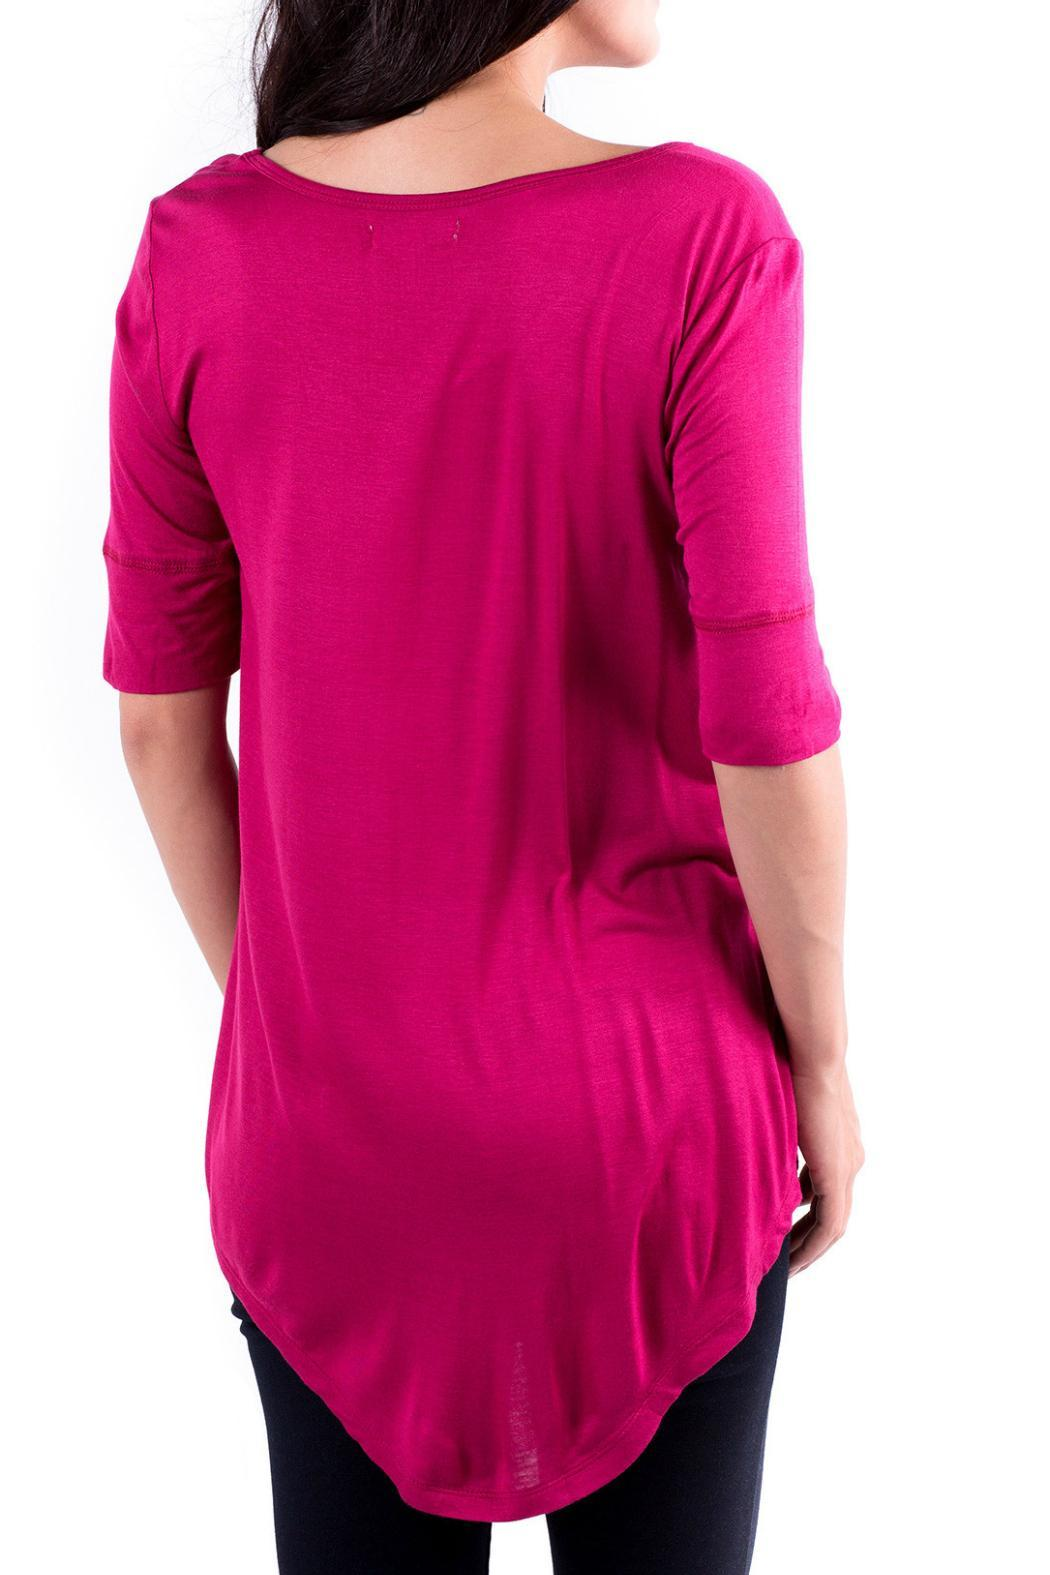 Downeast Basics Sangria Hot Top - Front Full Image